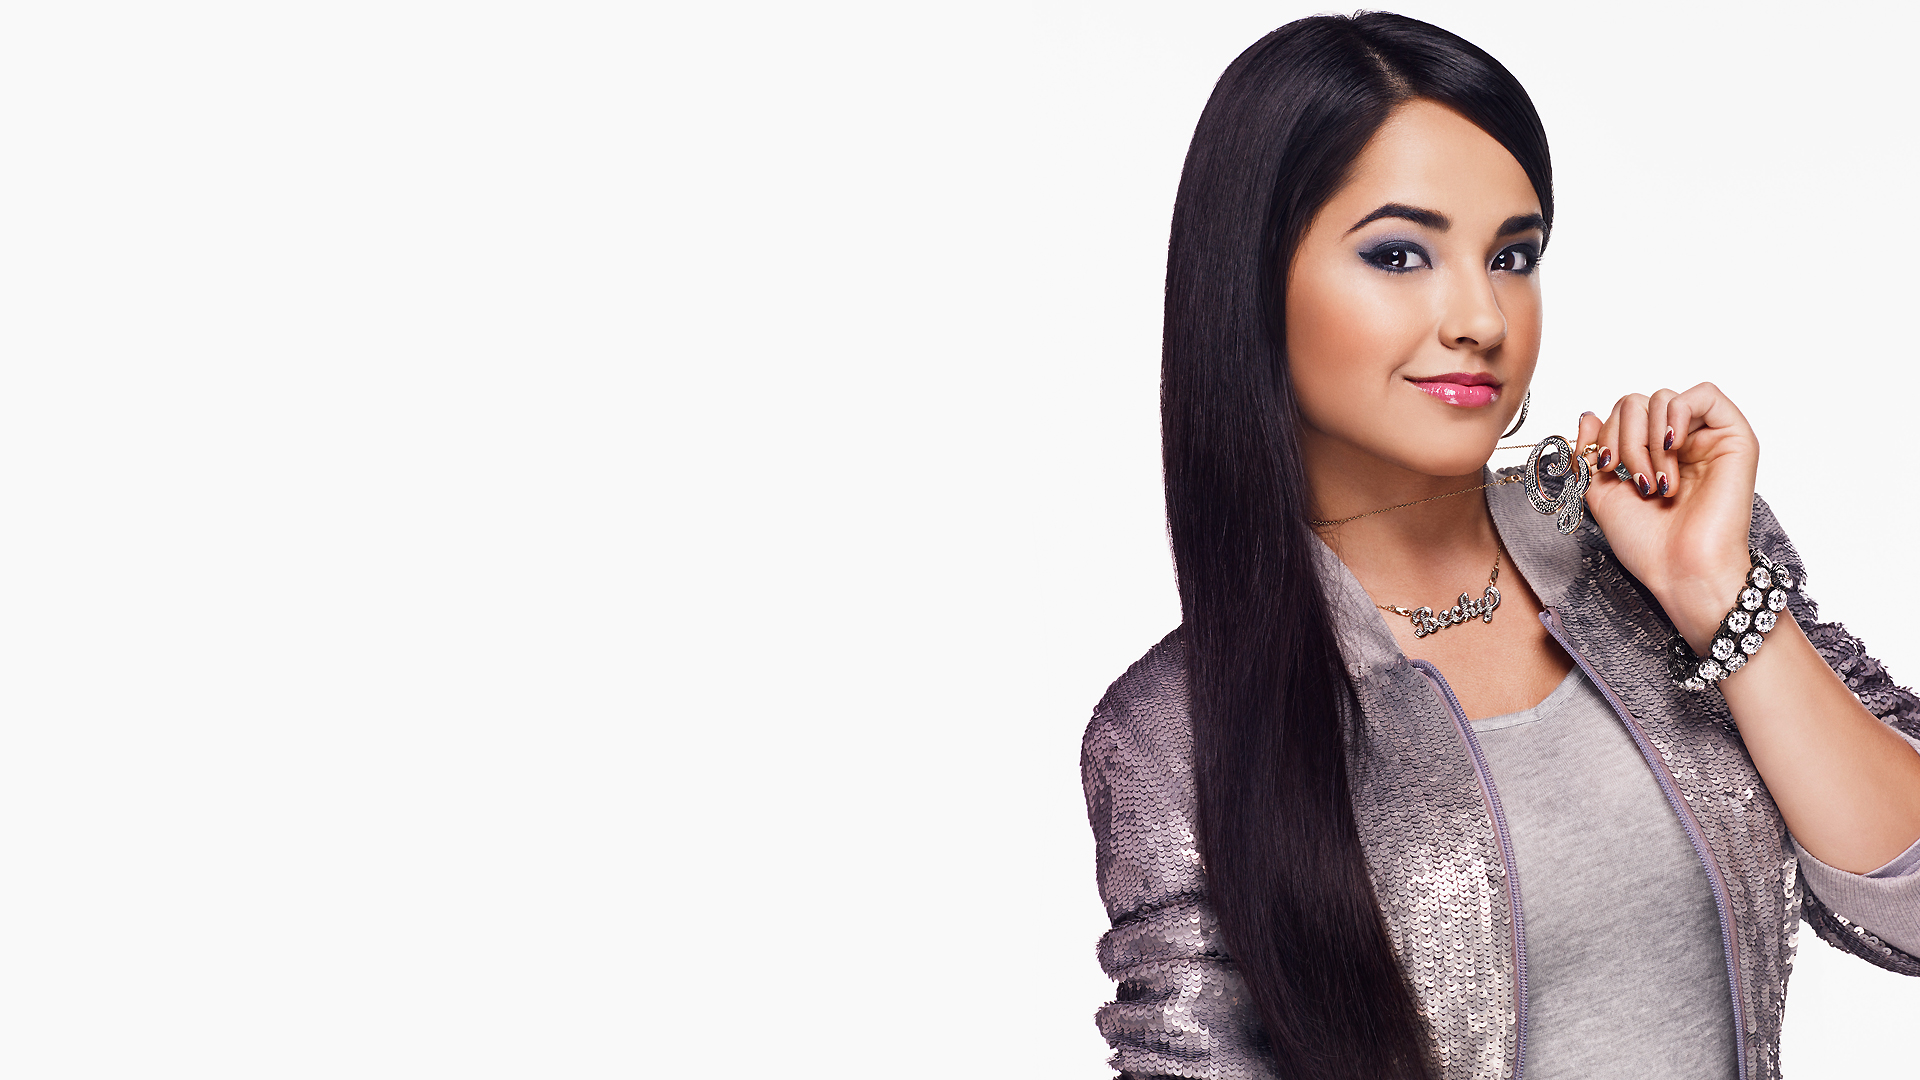 Becky G backdrop wallpaper 1920x1080